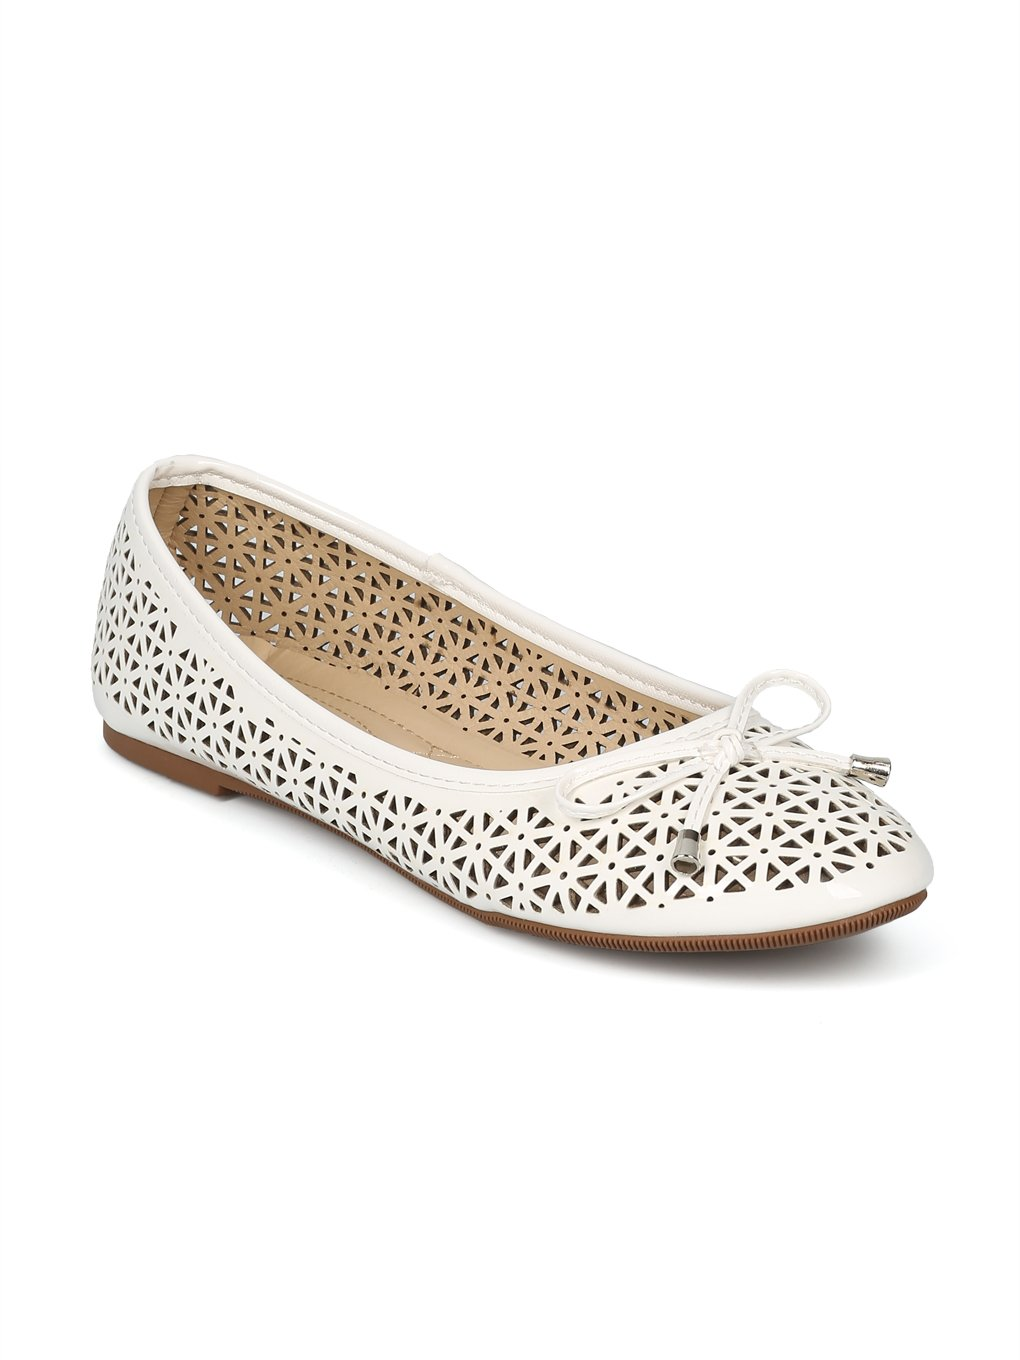 Alrisco Women Round Toe Bow Tie Perforated Ballet Flat HH88 B07D47KLSN 10 B(M) US|White Patent